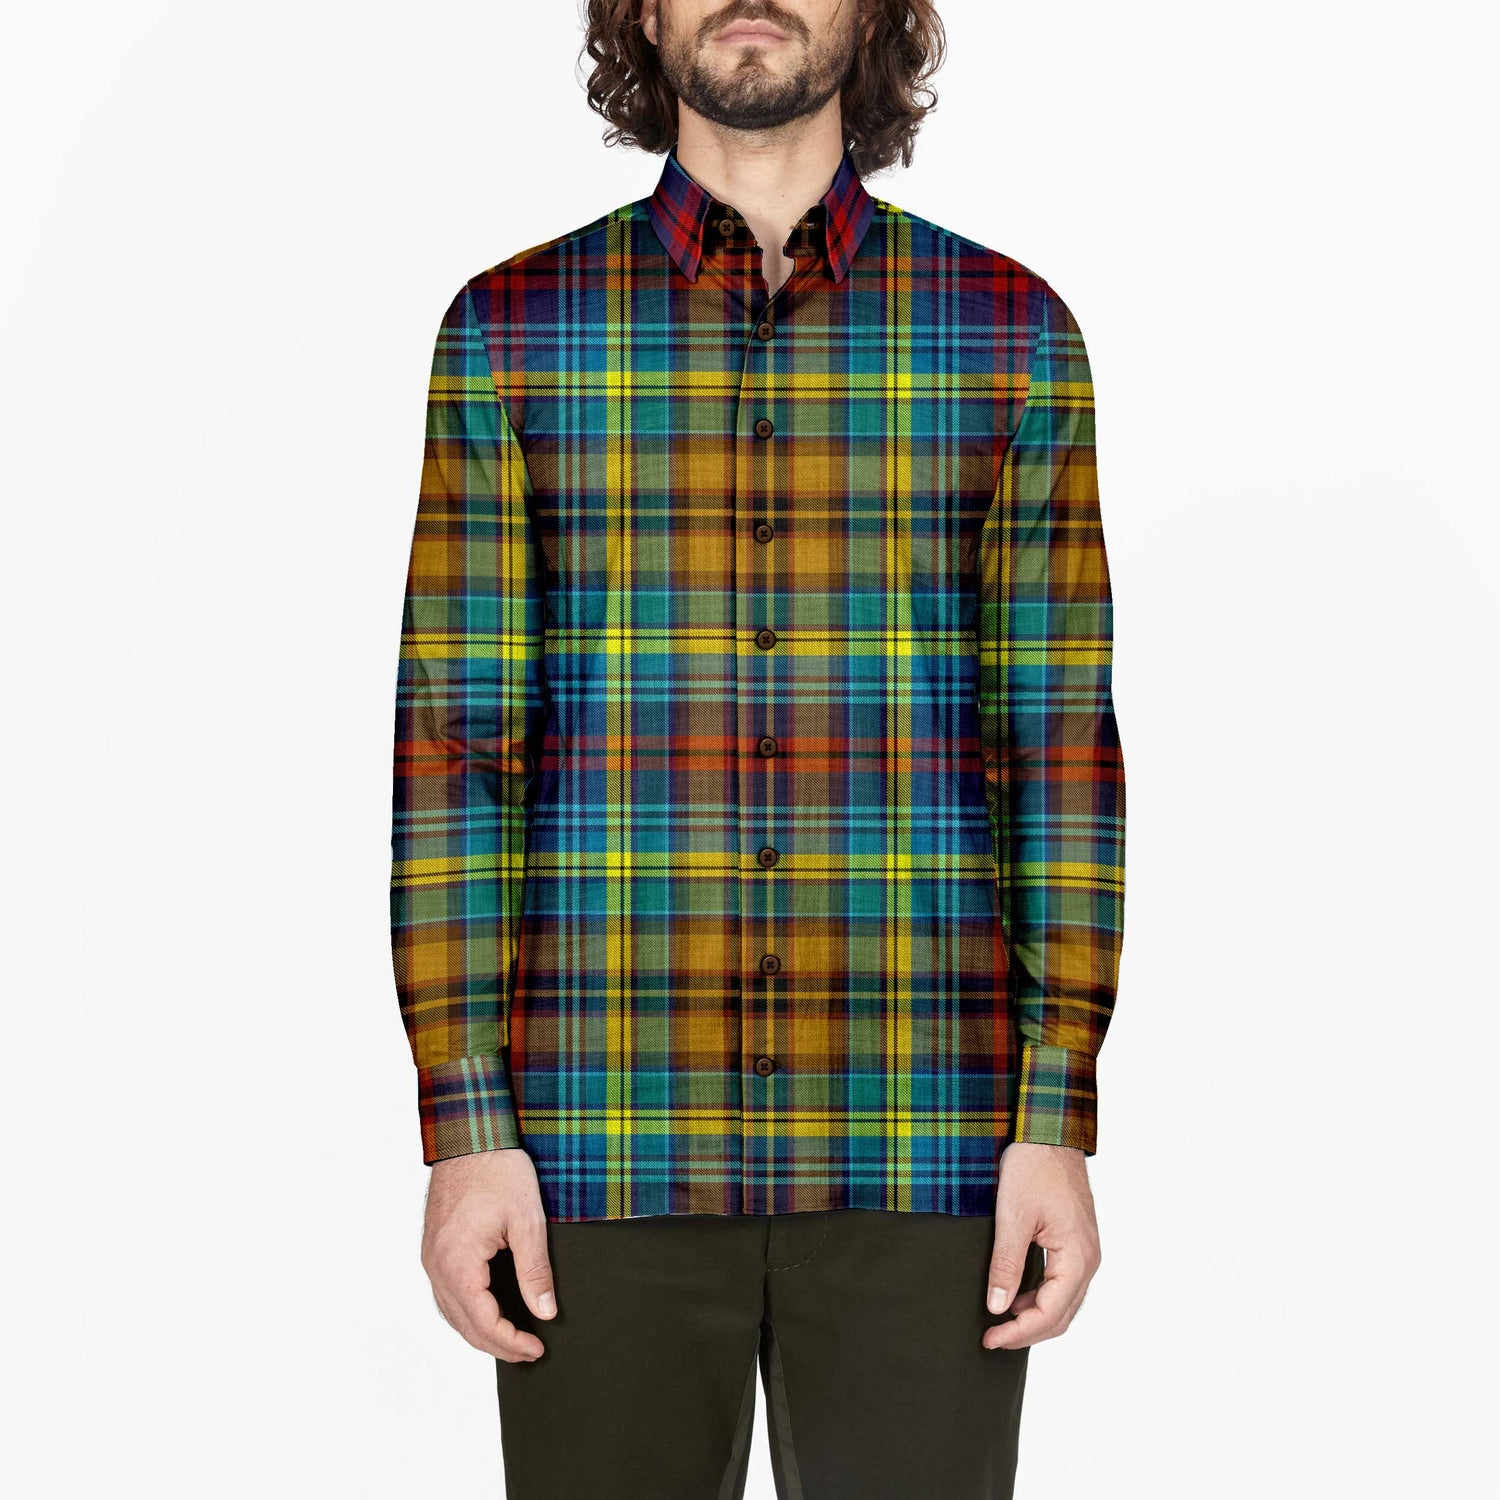 The Wolfman Flannel